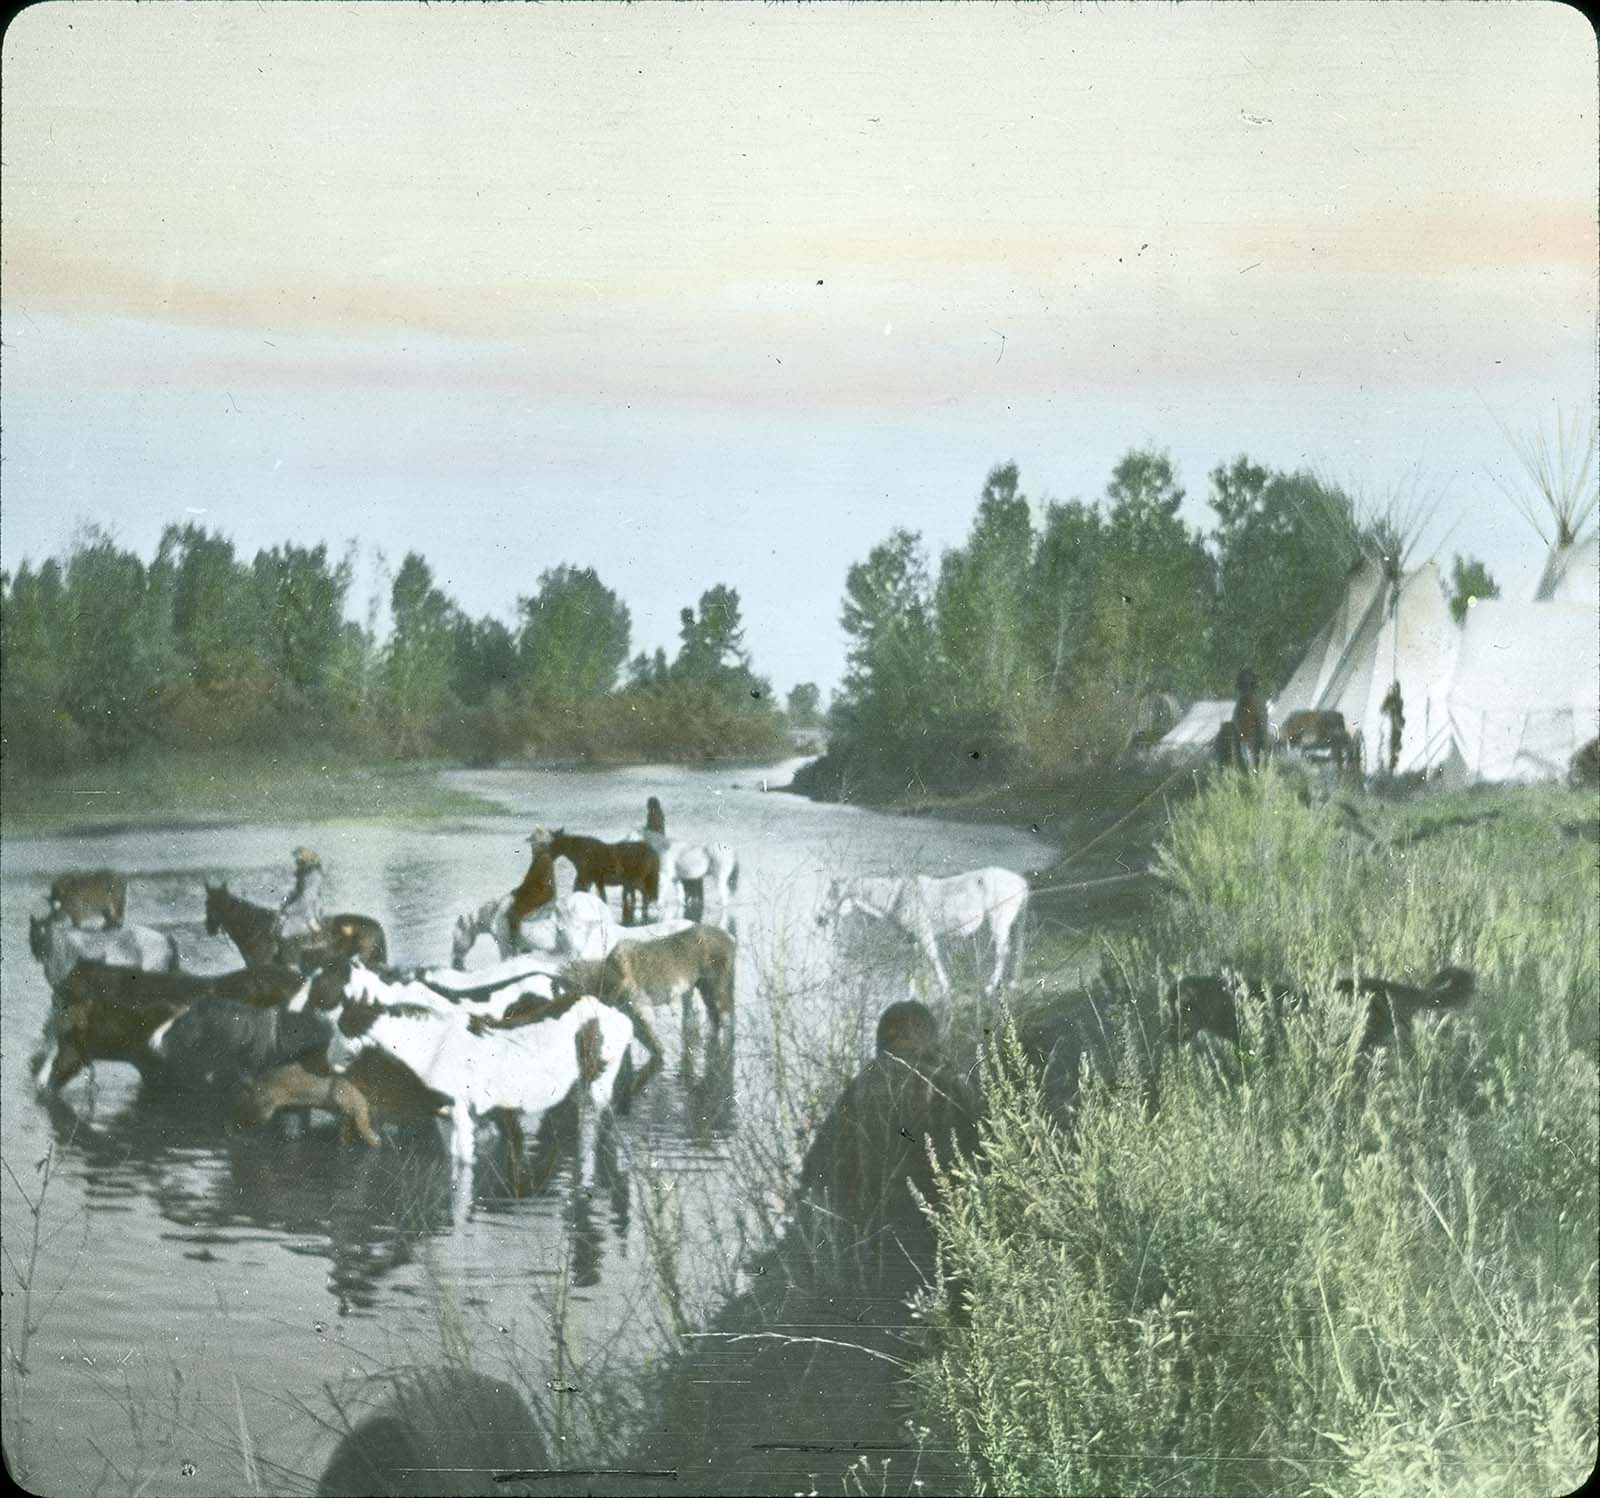 Horses and tipis at the Little Bighorn River. Lantern slide. MS 95 William A. Petzoldt Collection, McCracken Research Library. LS.95.289